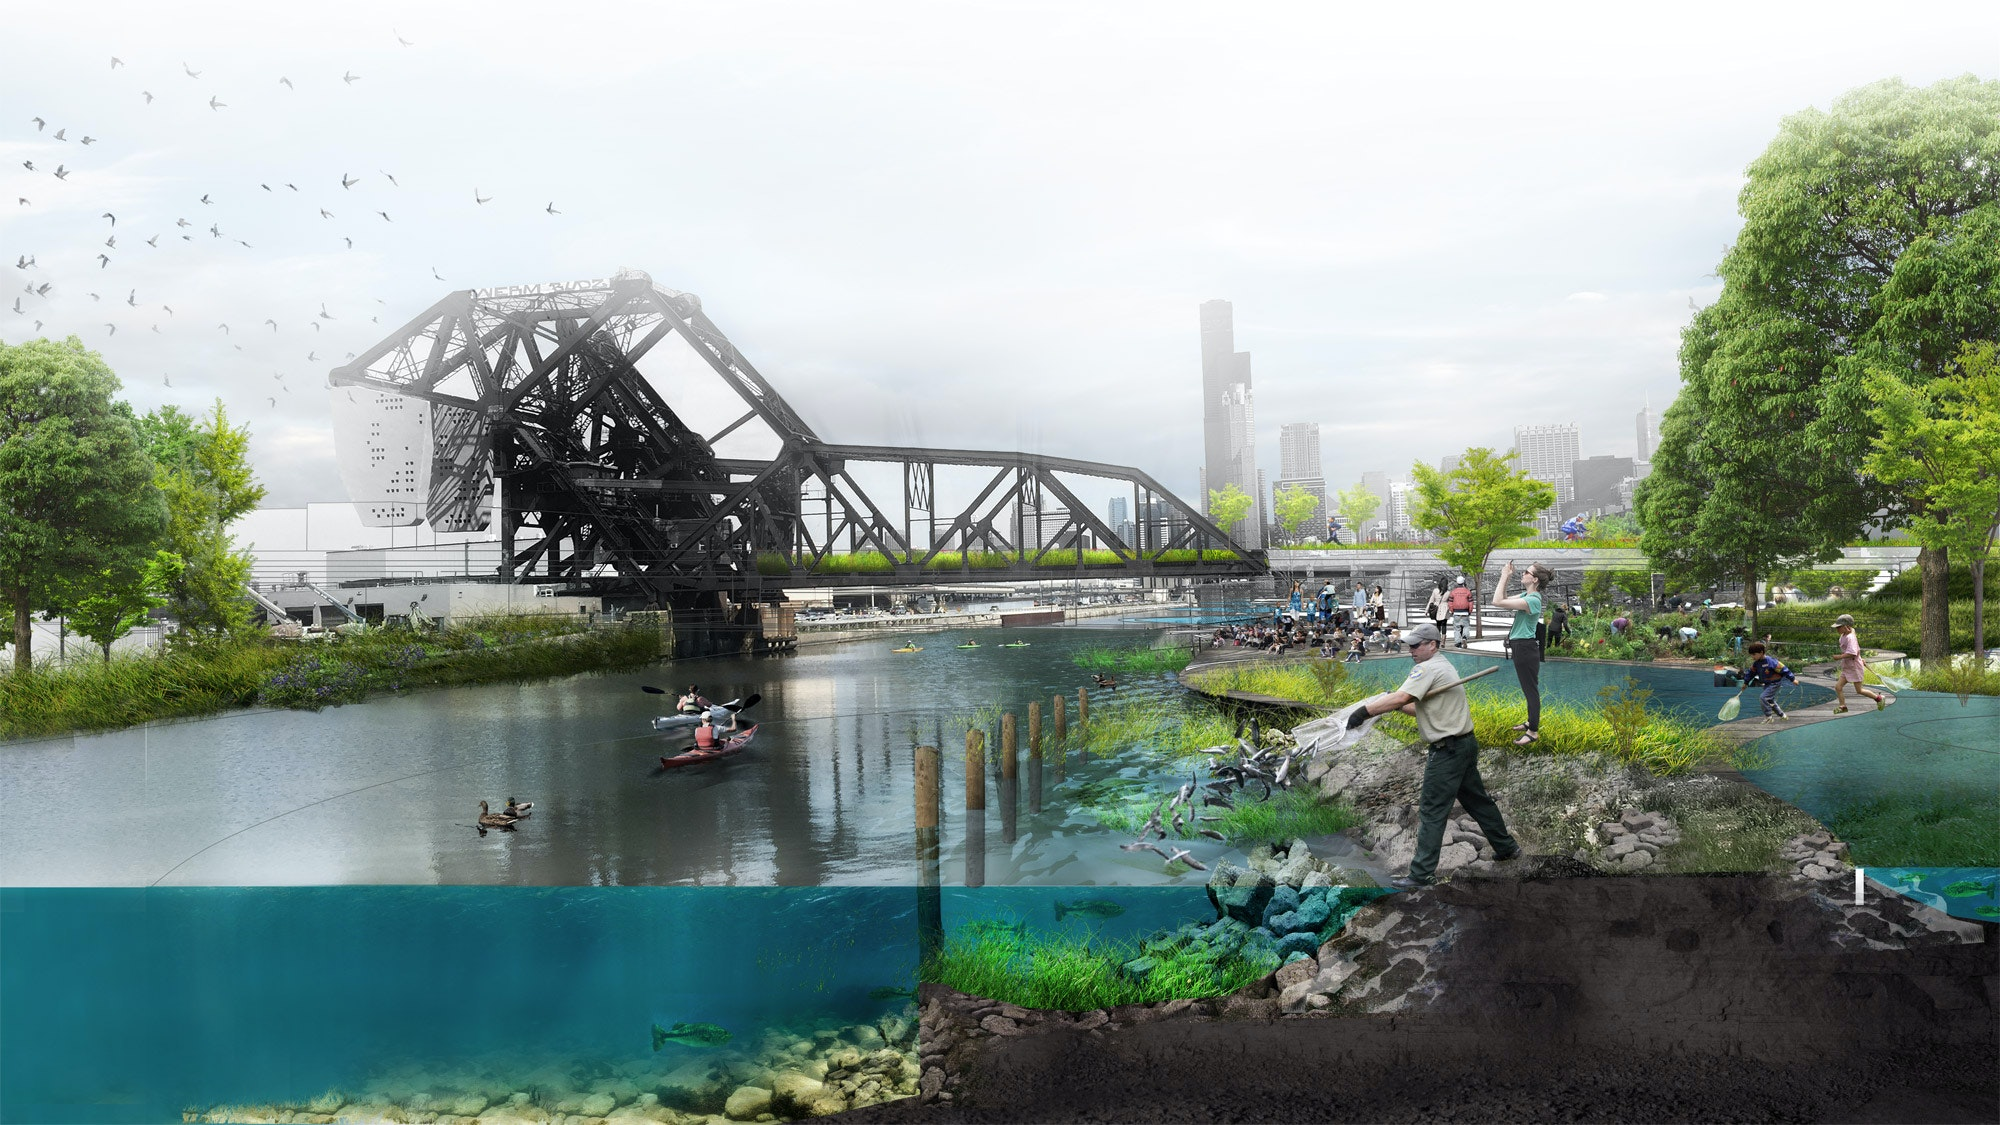 A photographic rendering of a revitalized and recreational spot along the Chicago river.